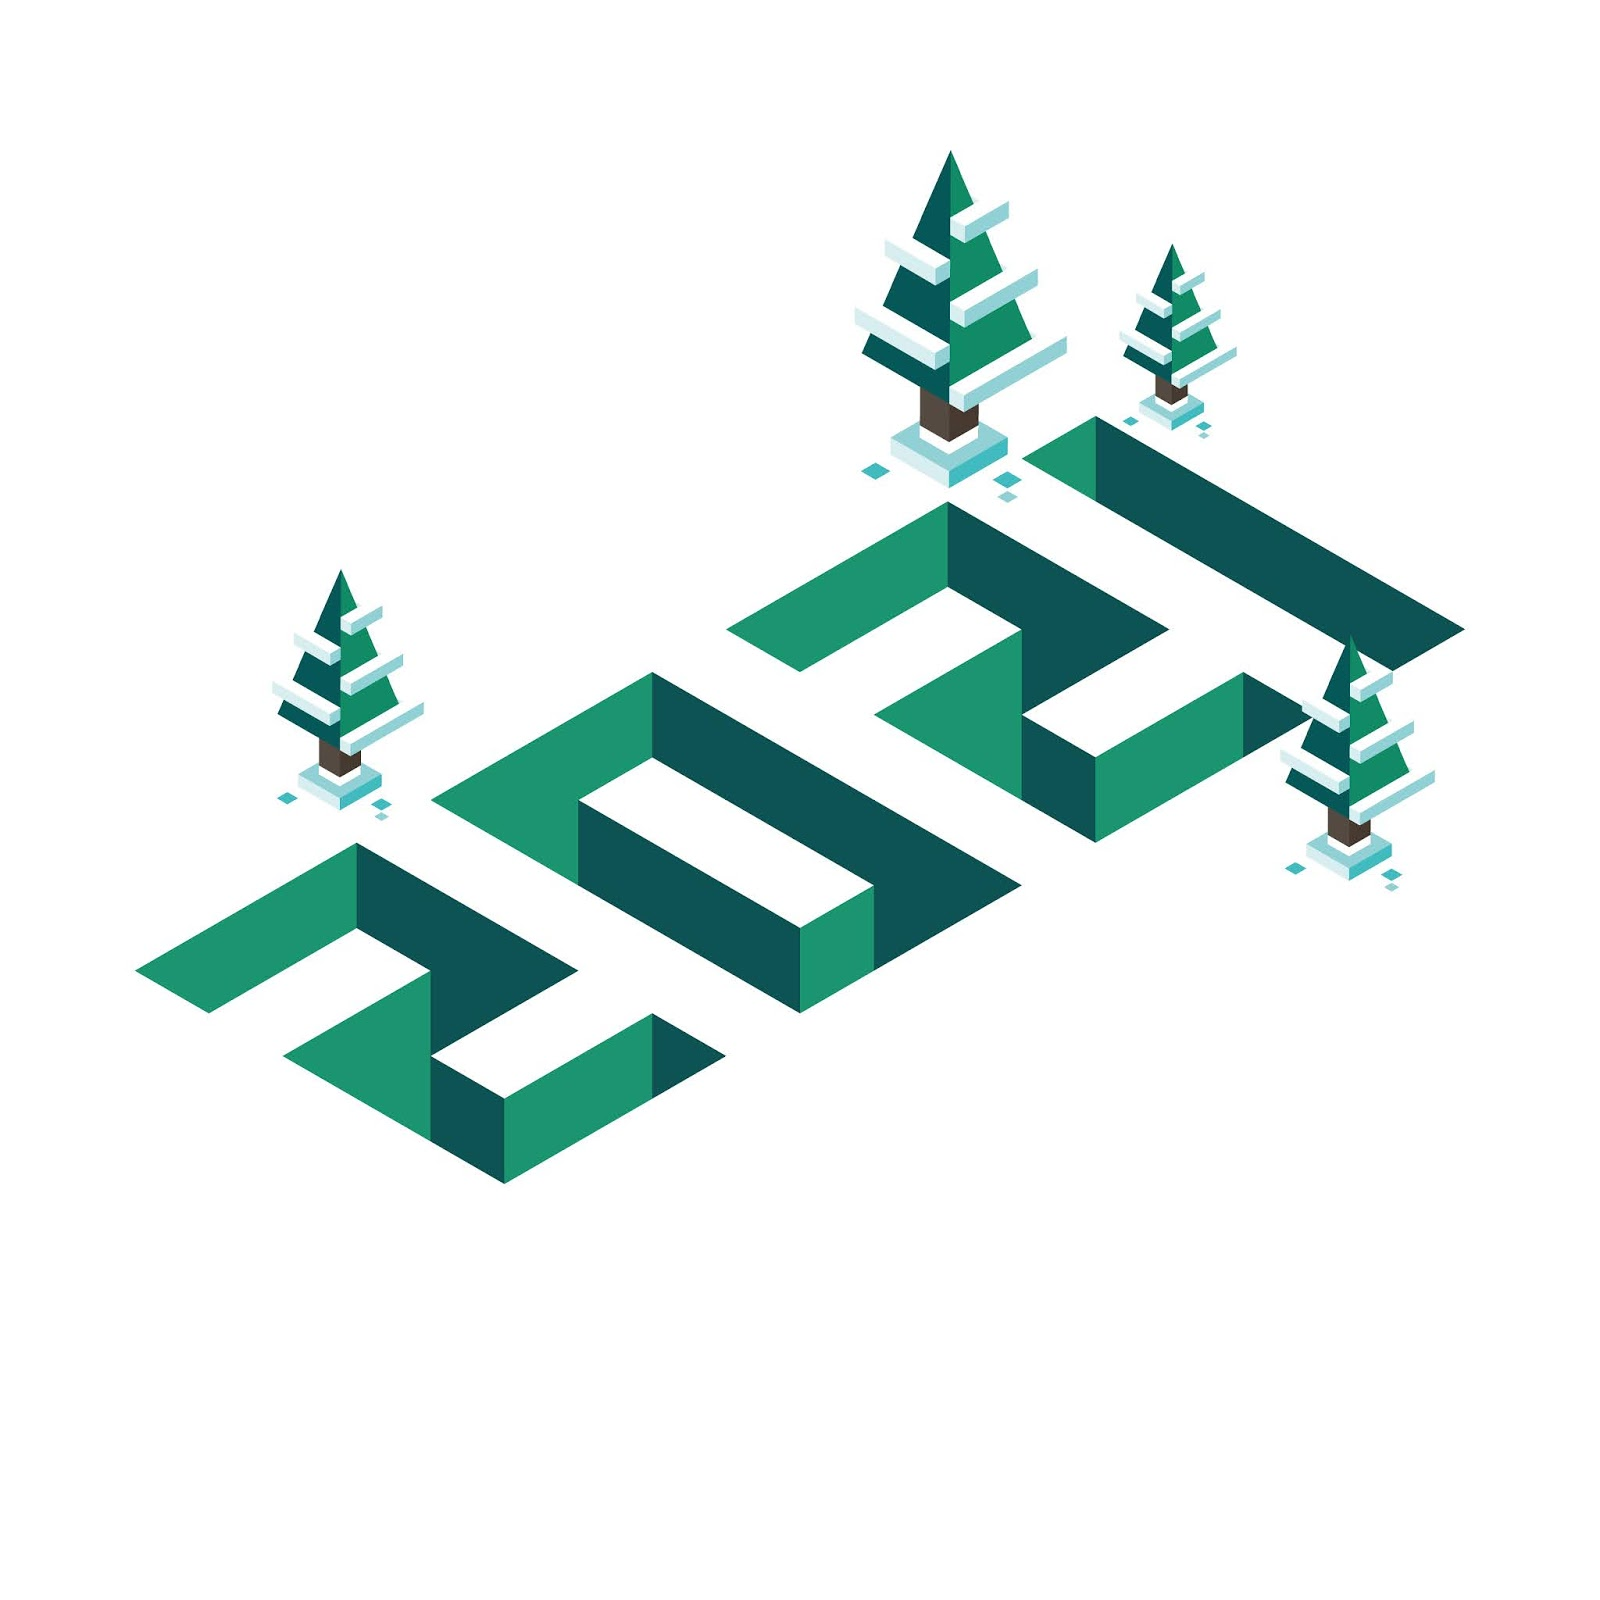 Happy New Year Merry Christmas 2021 Banner Isometry As Three Dimensional Volumetric Illustration With Pine Trees Snow Green Free Download Vector CDR, AI, EPS and PNG Formats